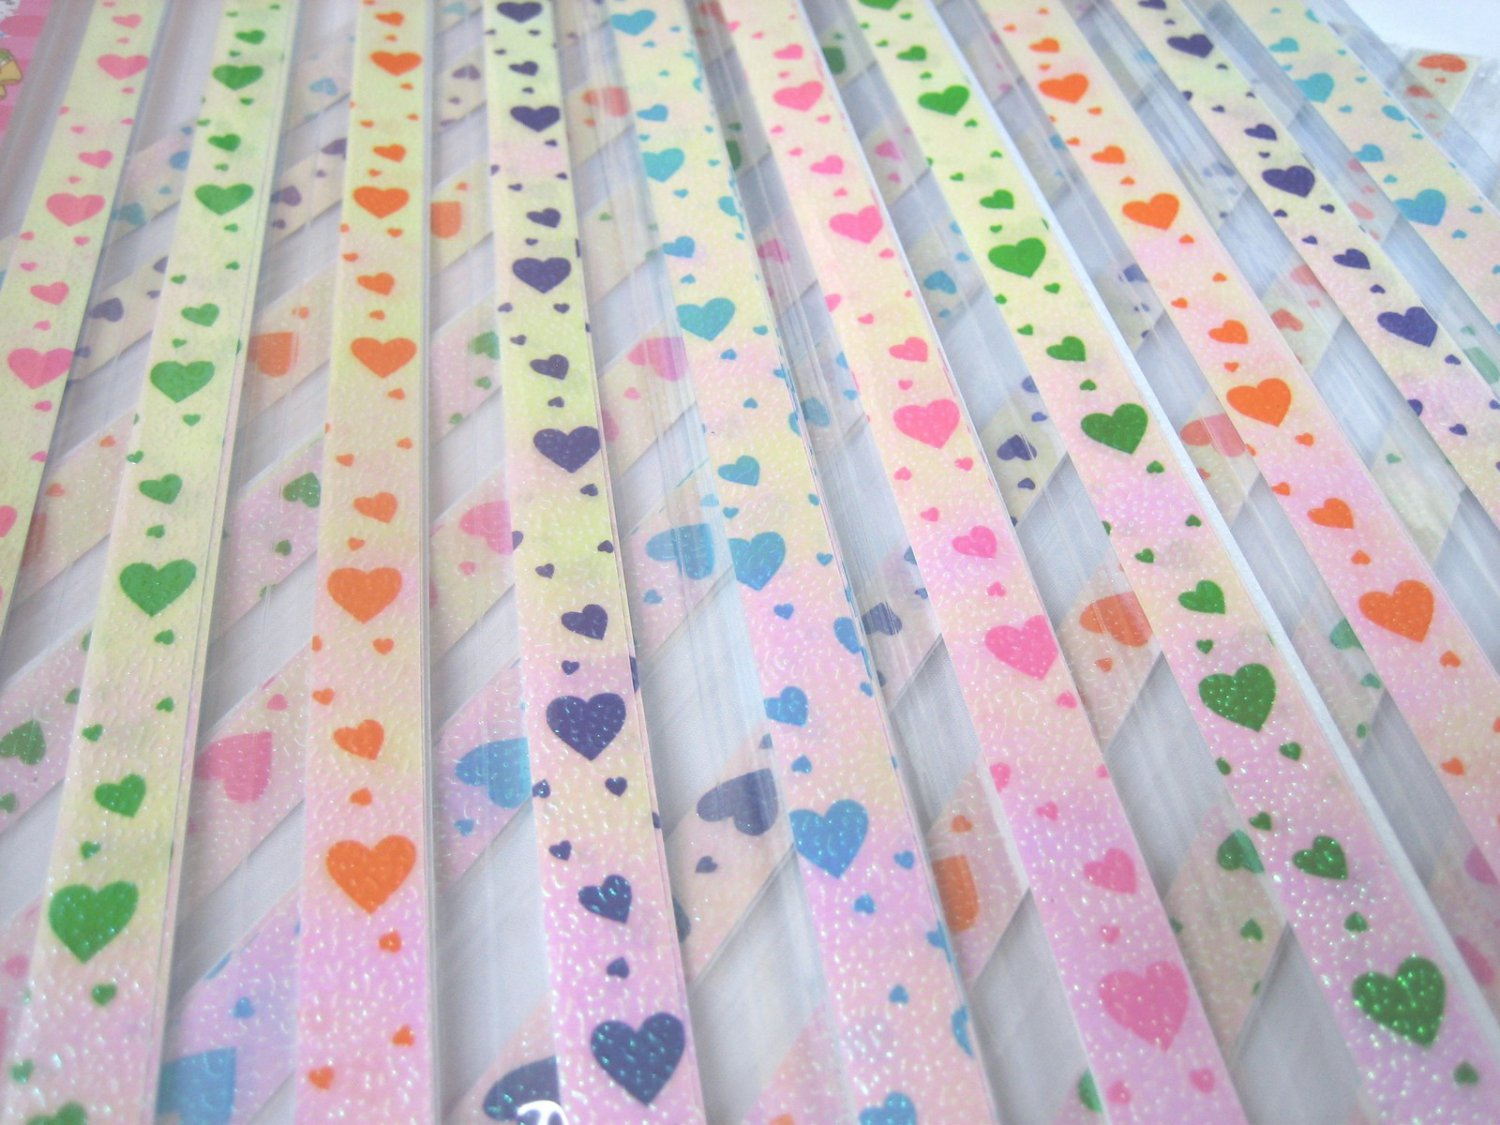 80 strips LOVELY HEART Mix Colour Origami Folding Lucky Star Paper Strips 80A